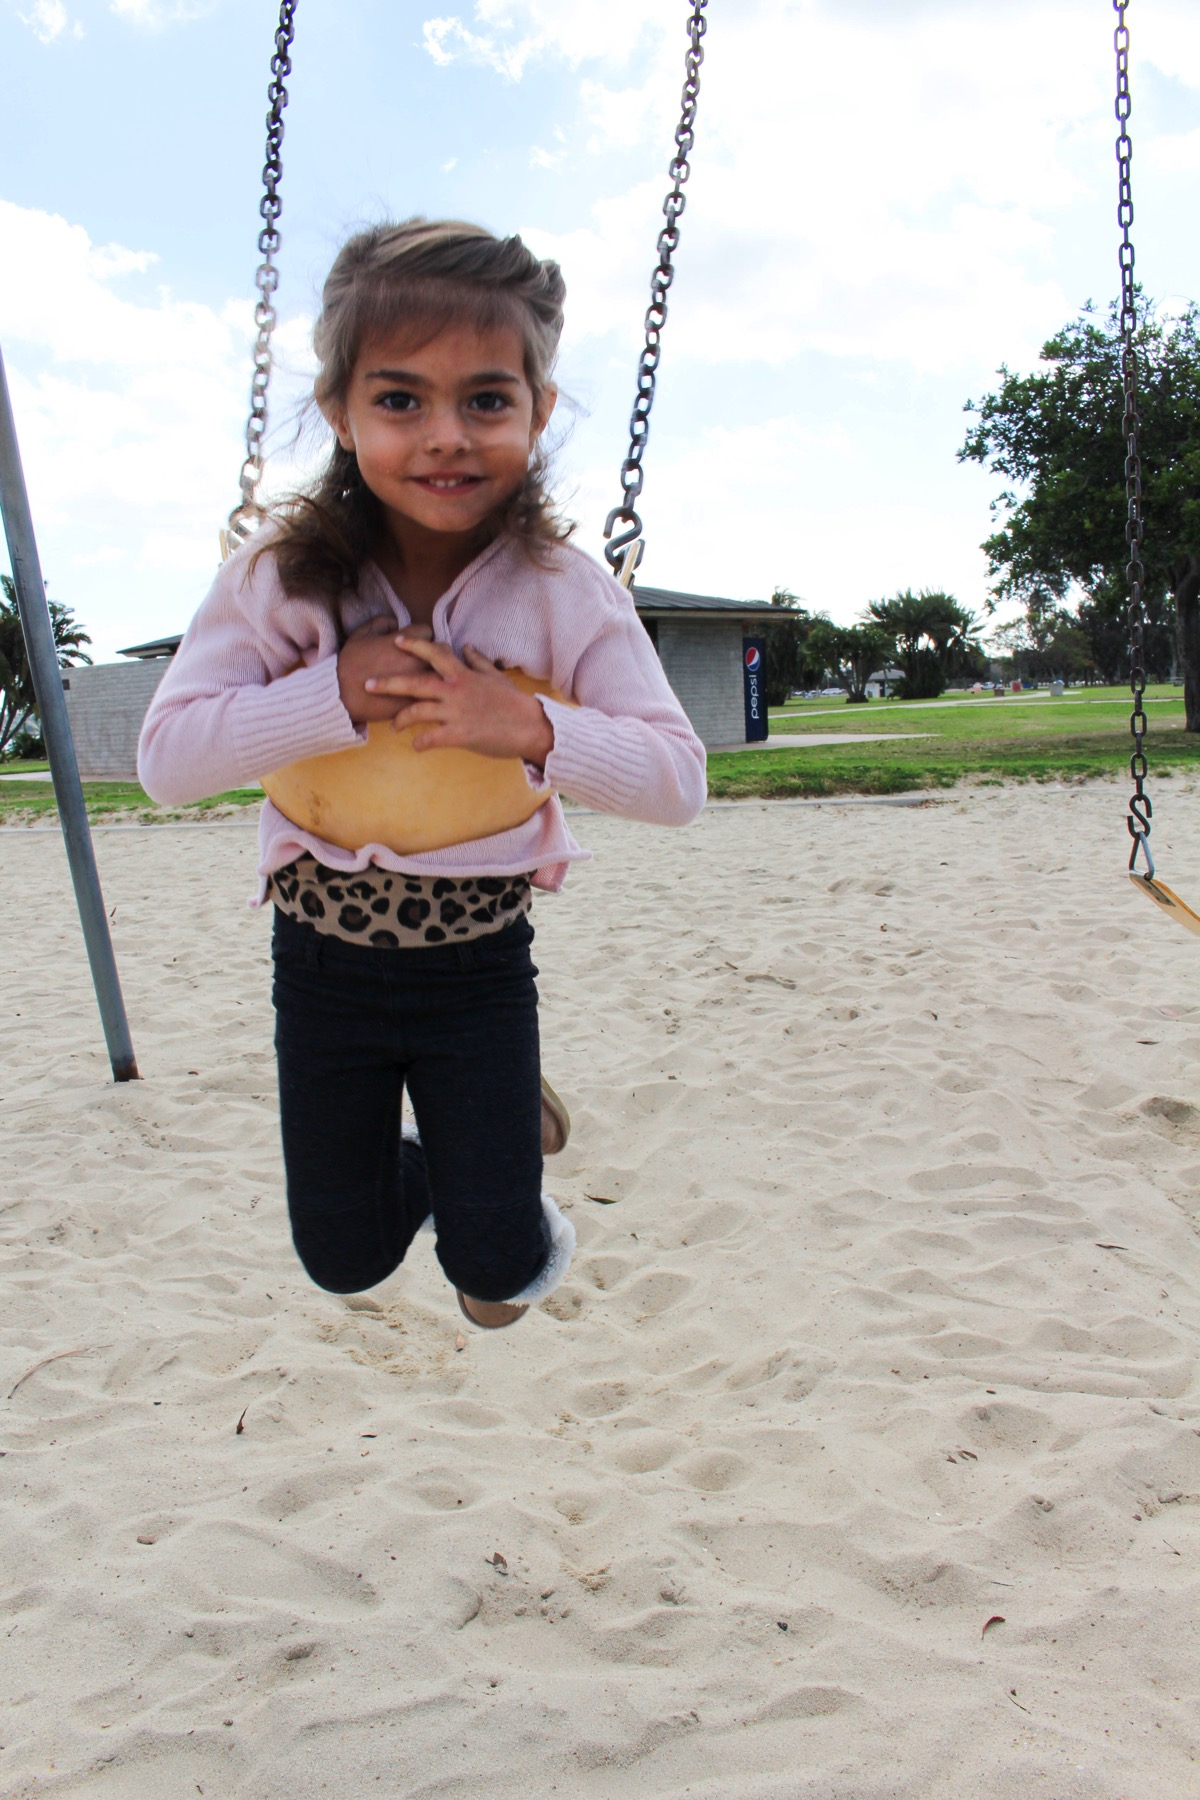 Livi swinging